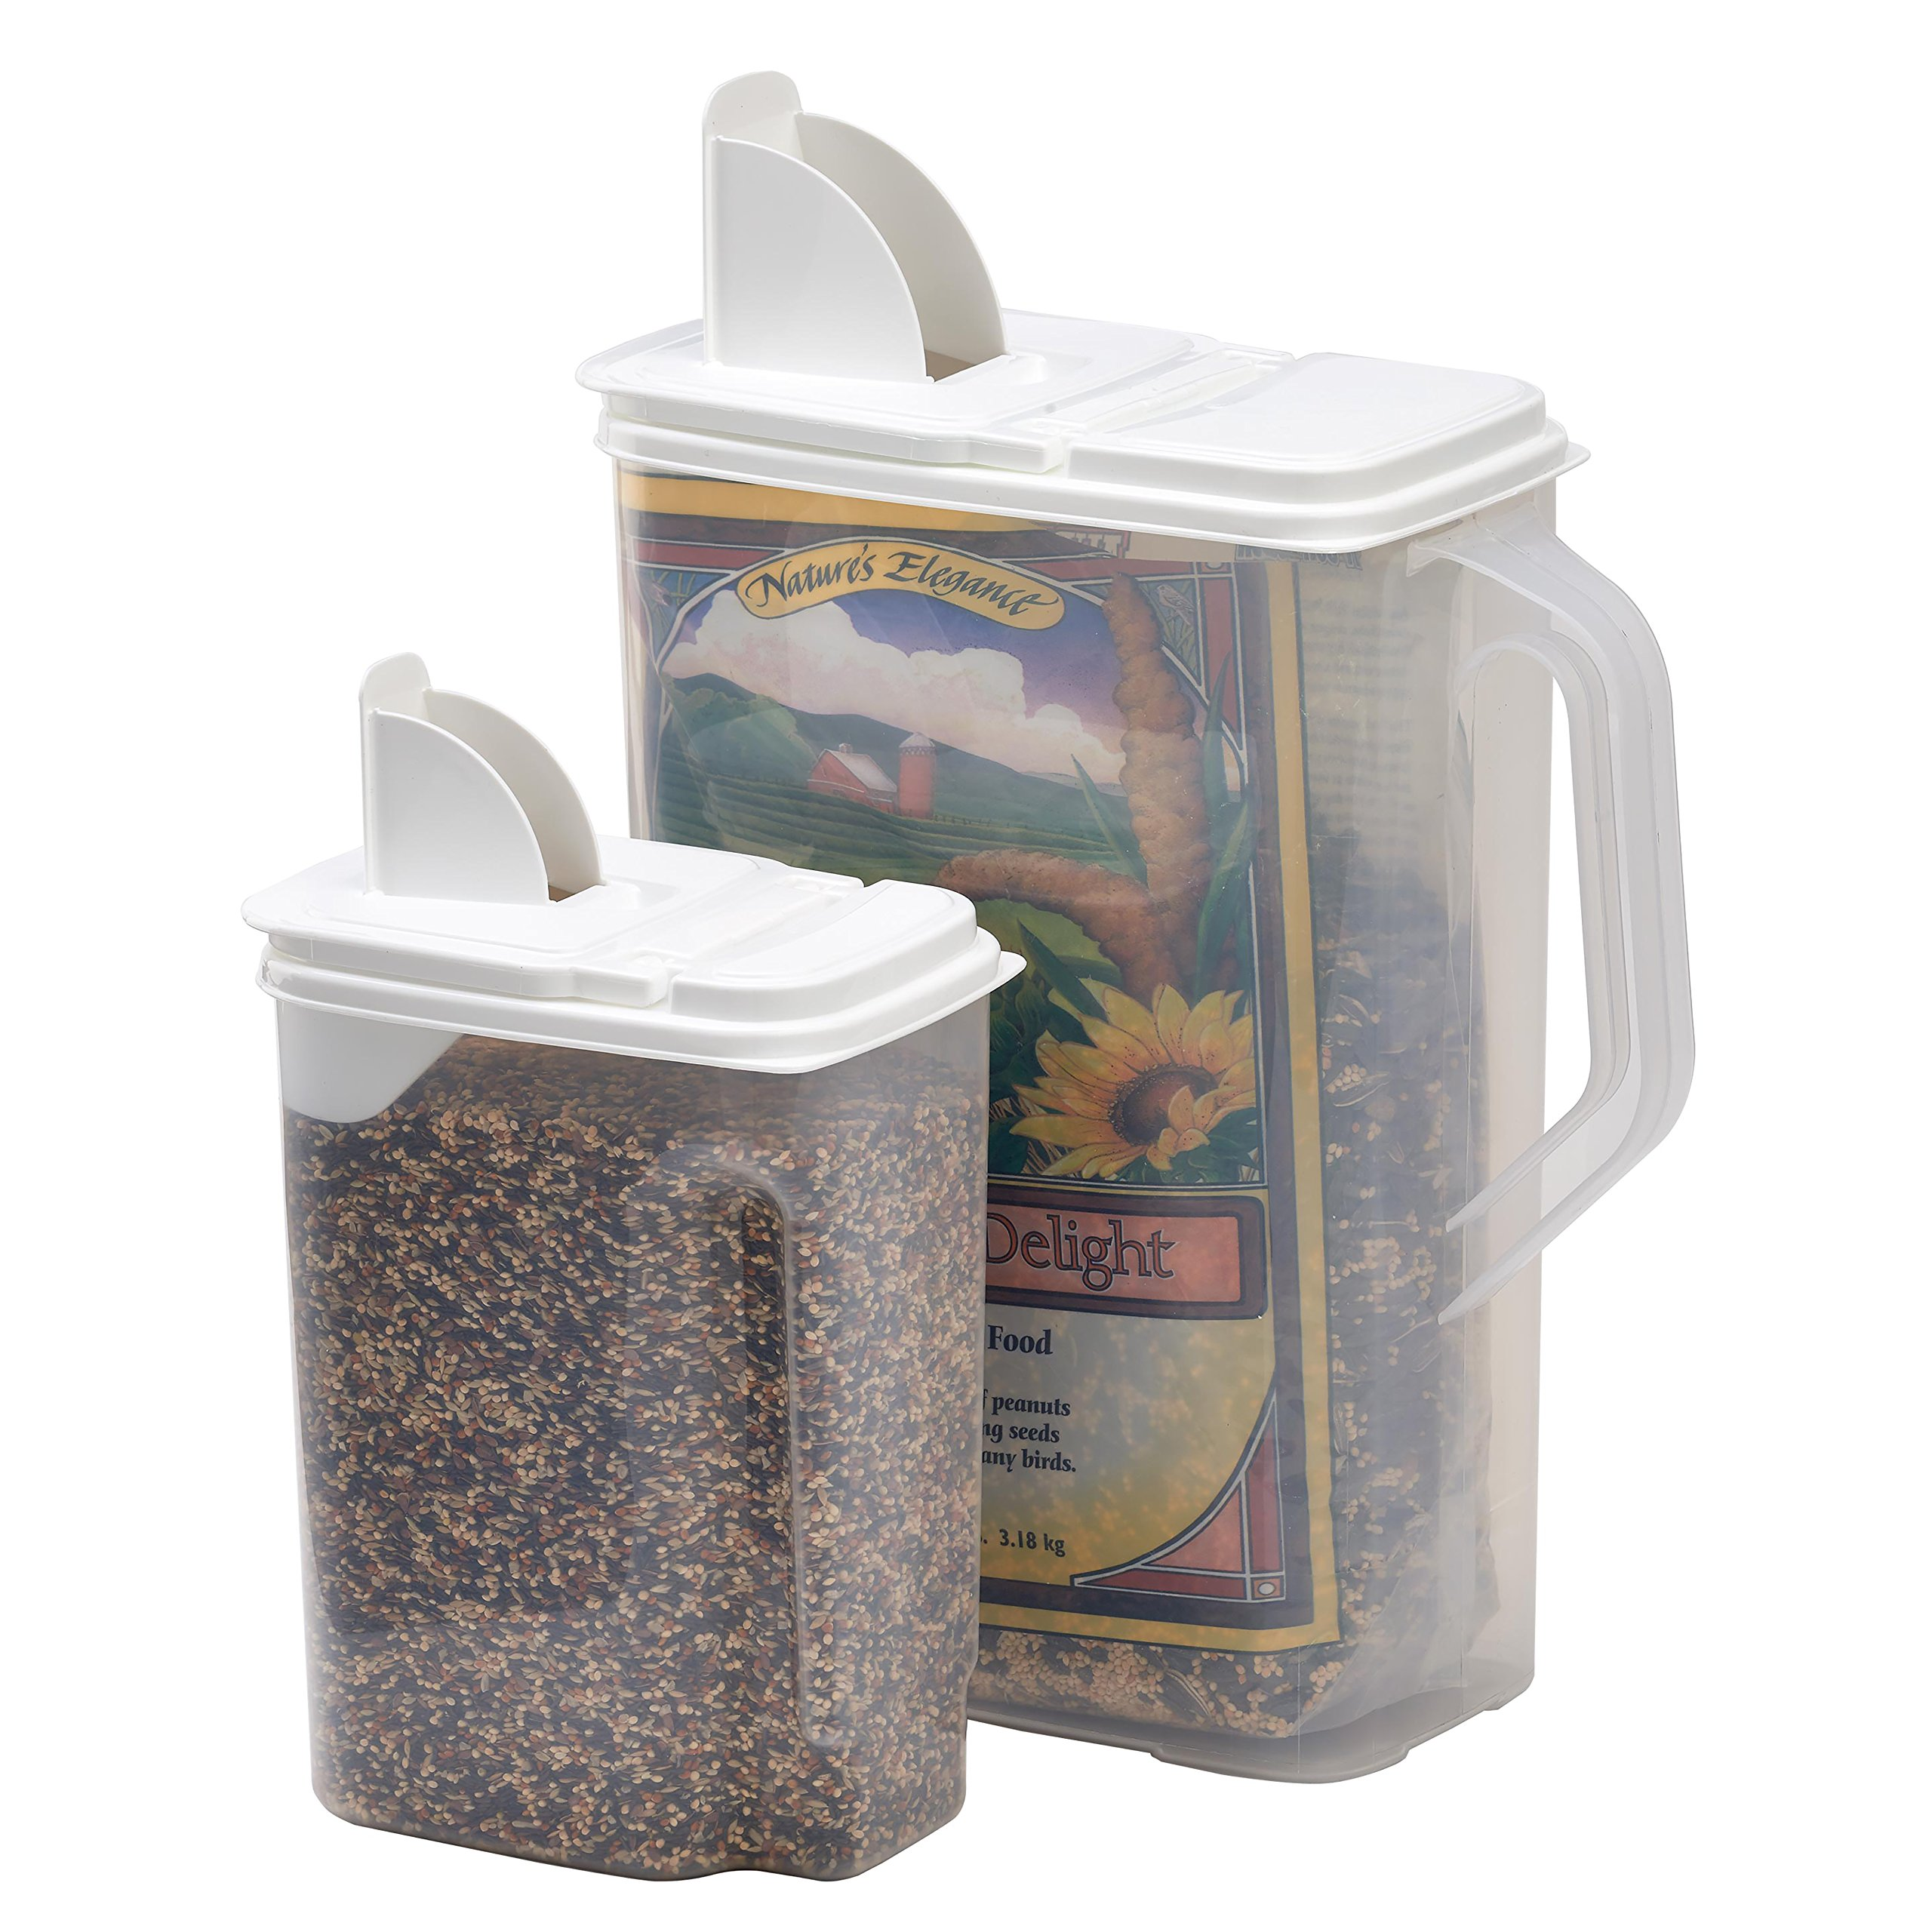 Buddeez 8 4-Quart Double-Pack Bird Seed Dispensing Set